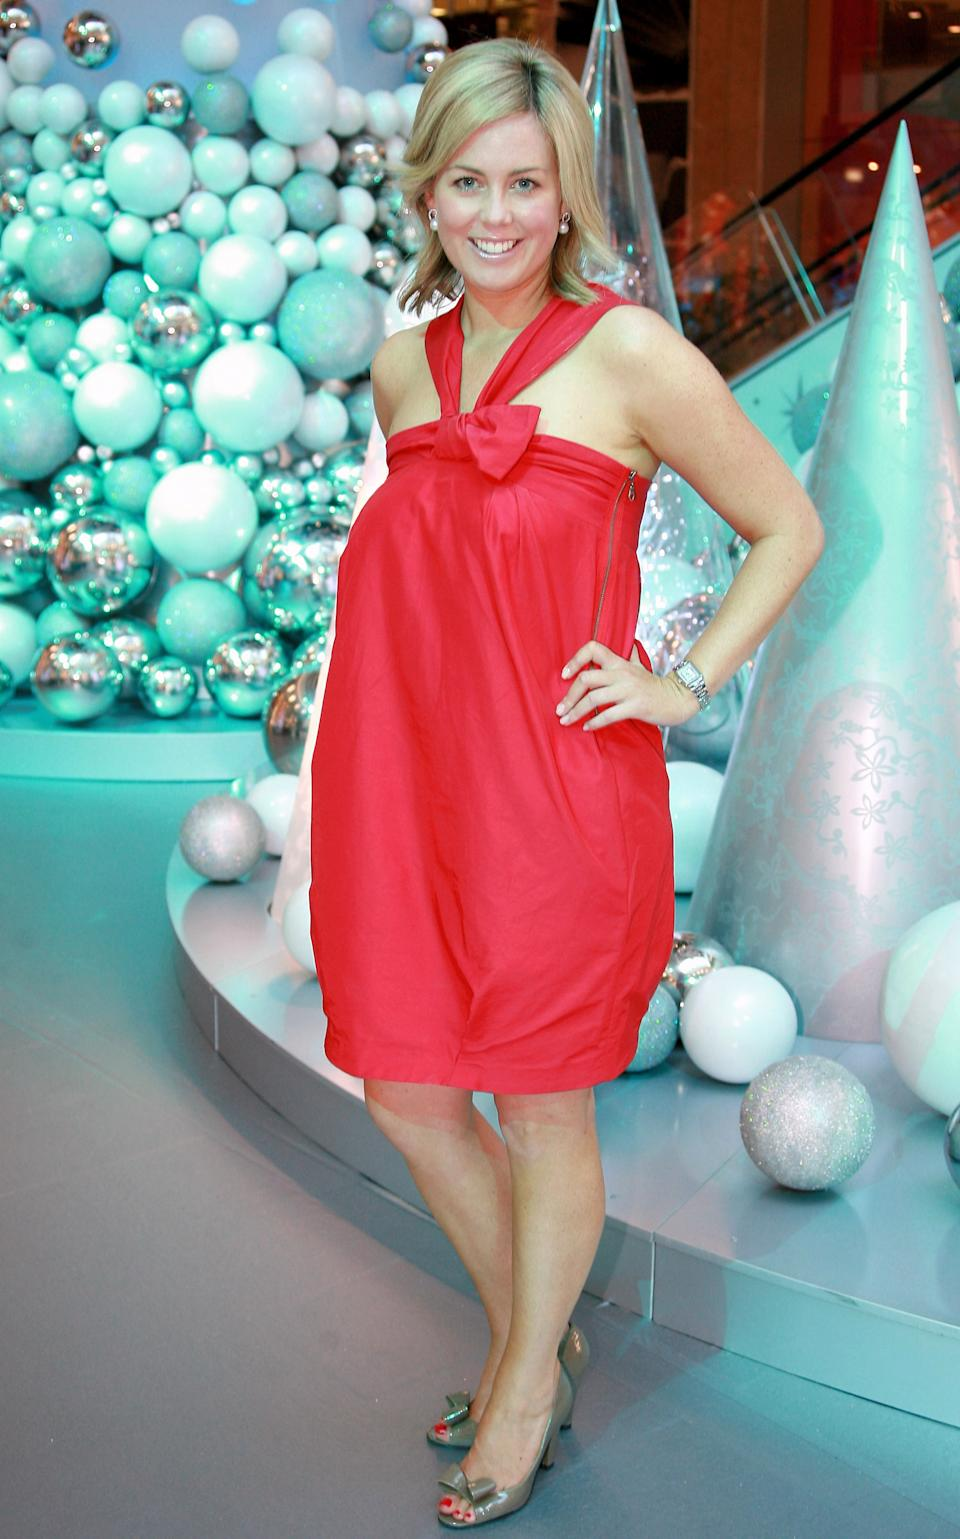 Channel 7 Weekend Sunrise c-host Samantha Armytage poses in a red dress at the Santa arrival at Bondi Junction Westfield on November 16, 2007 in Sydney, Australia.